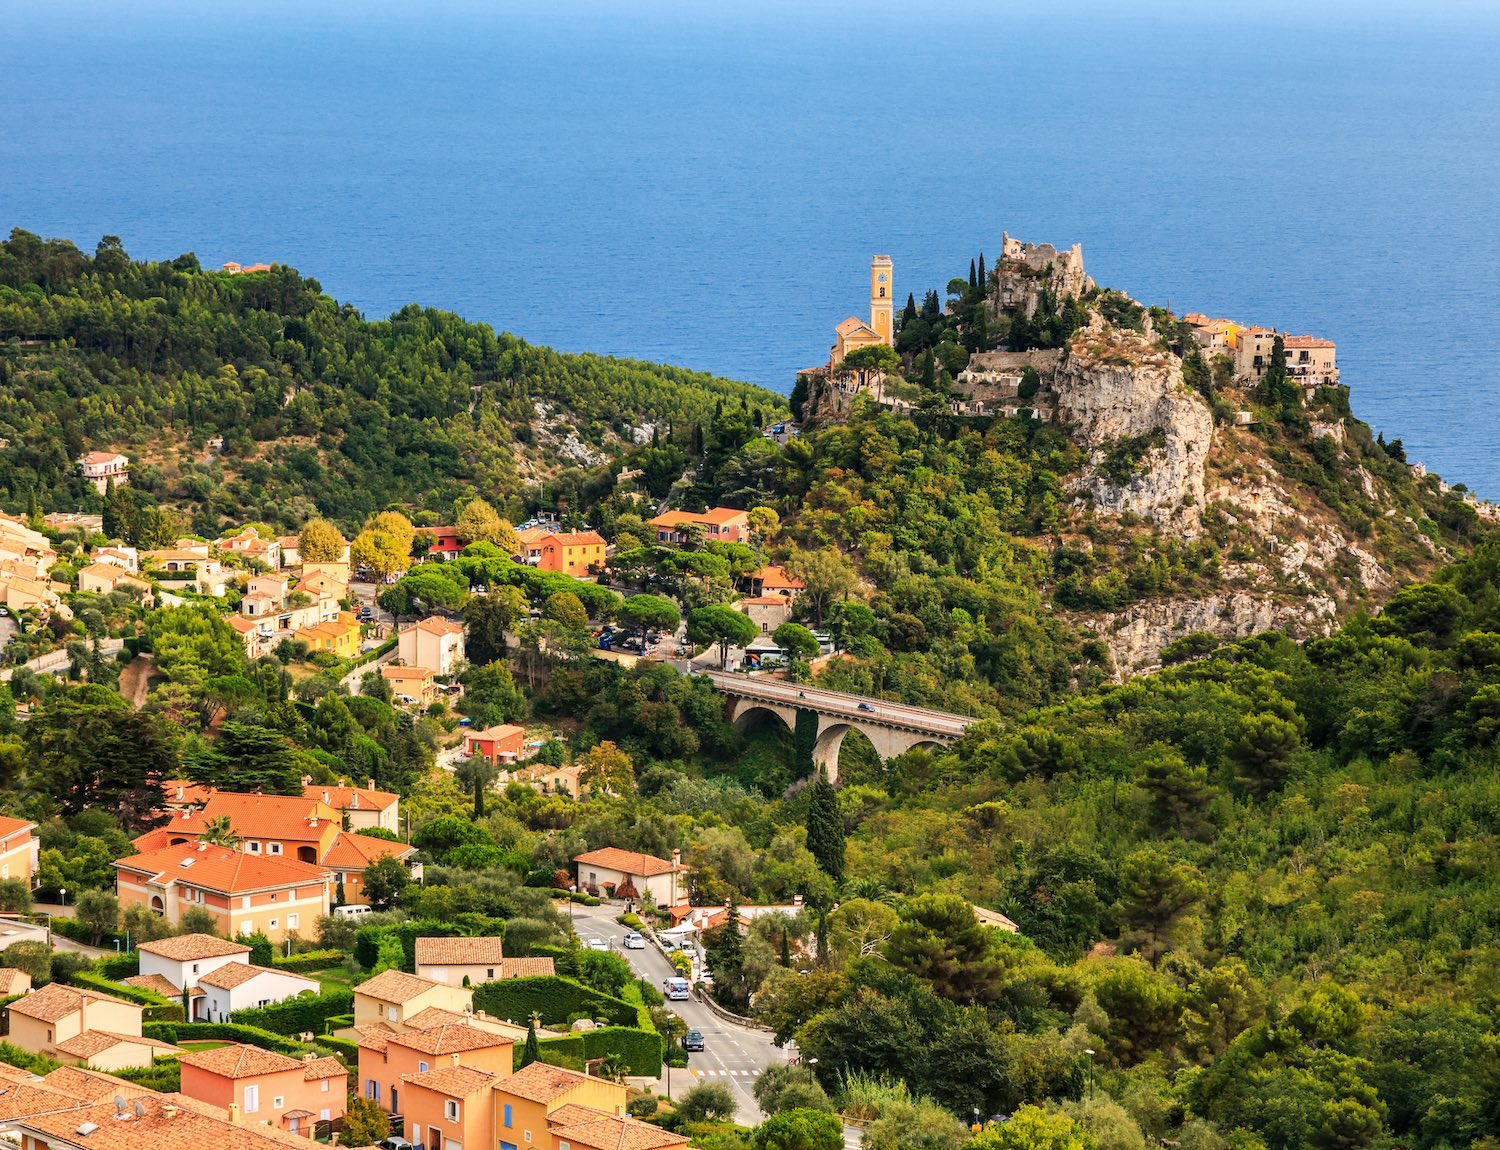 Eze - Things to do in the French Riviera